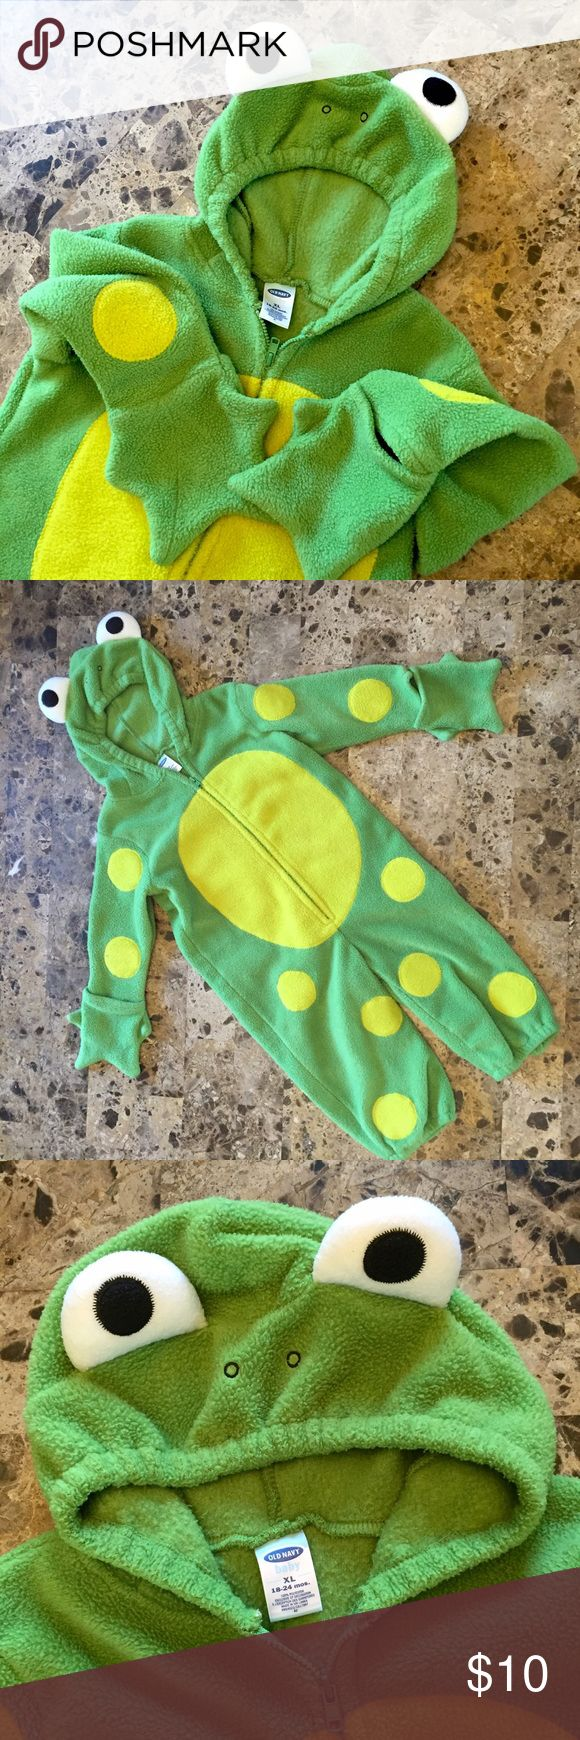 Mens gloves old navy - Baby Frog Halloween Costume Get Your Little Ready For Halloween With This Warm And Cozy Little